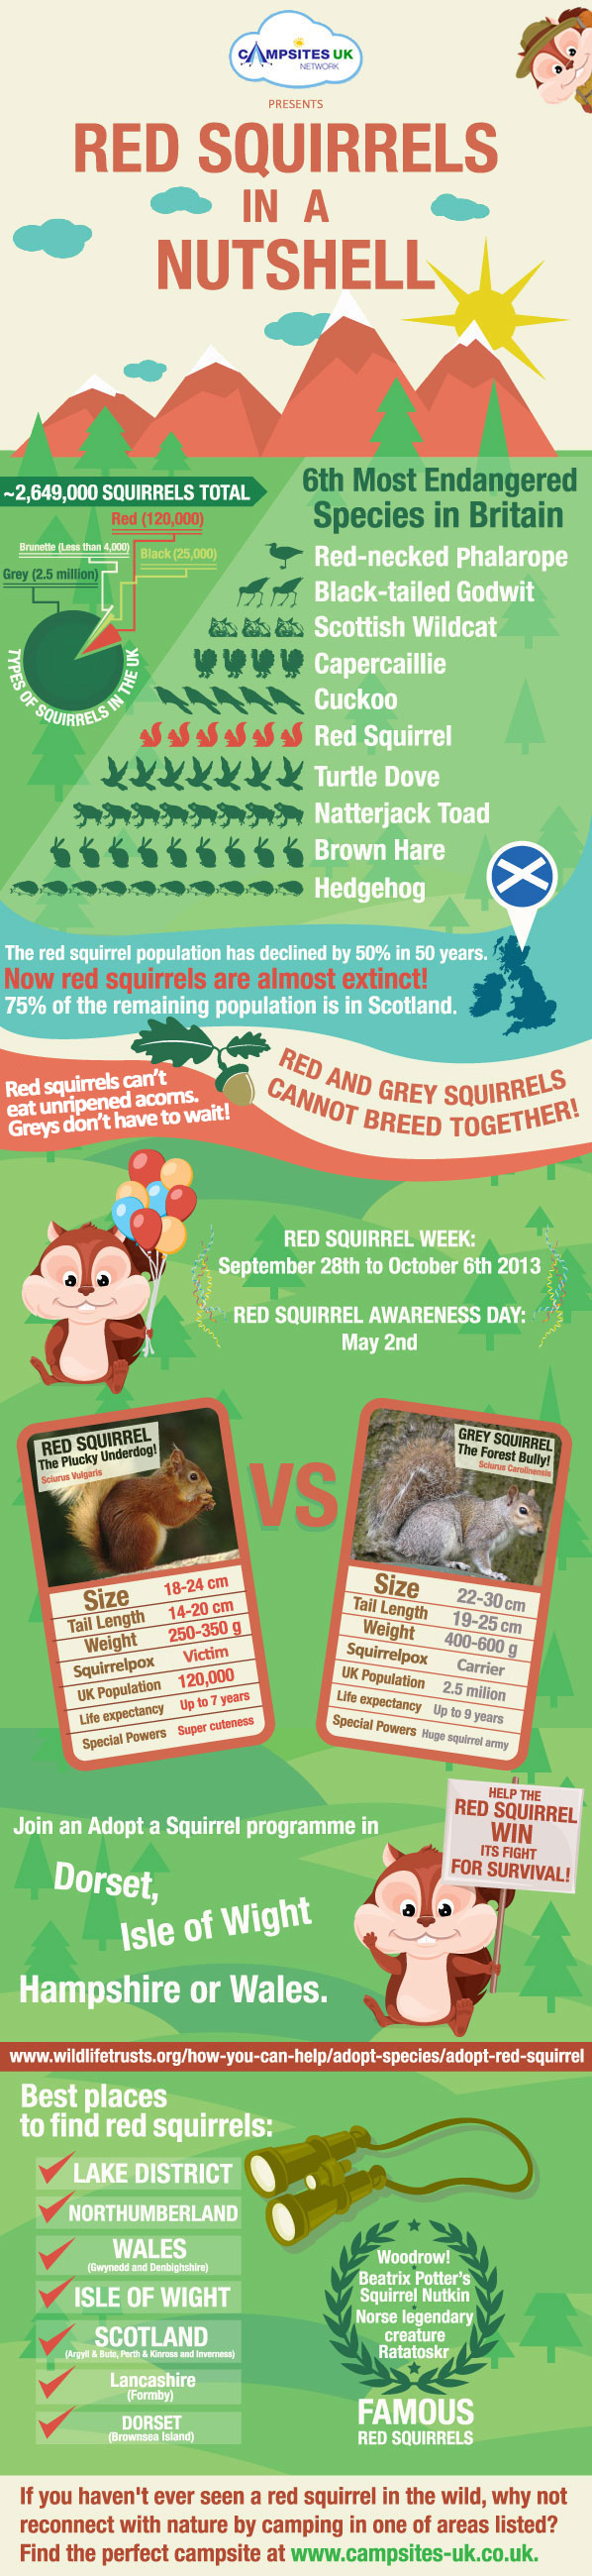 Red Squirrels in a Nutshell Infographic